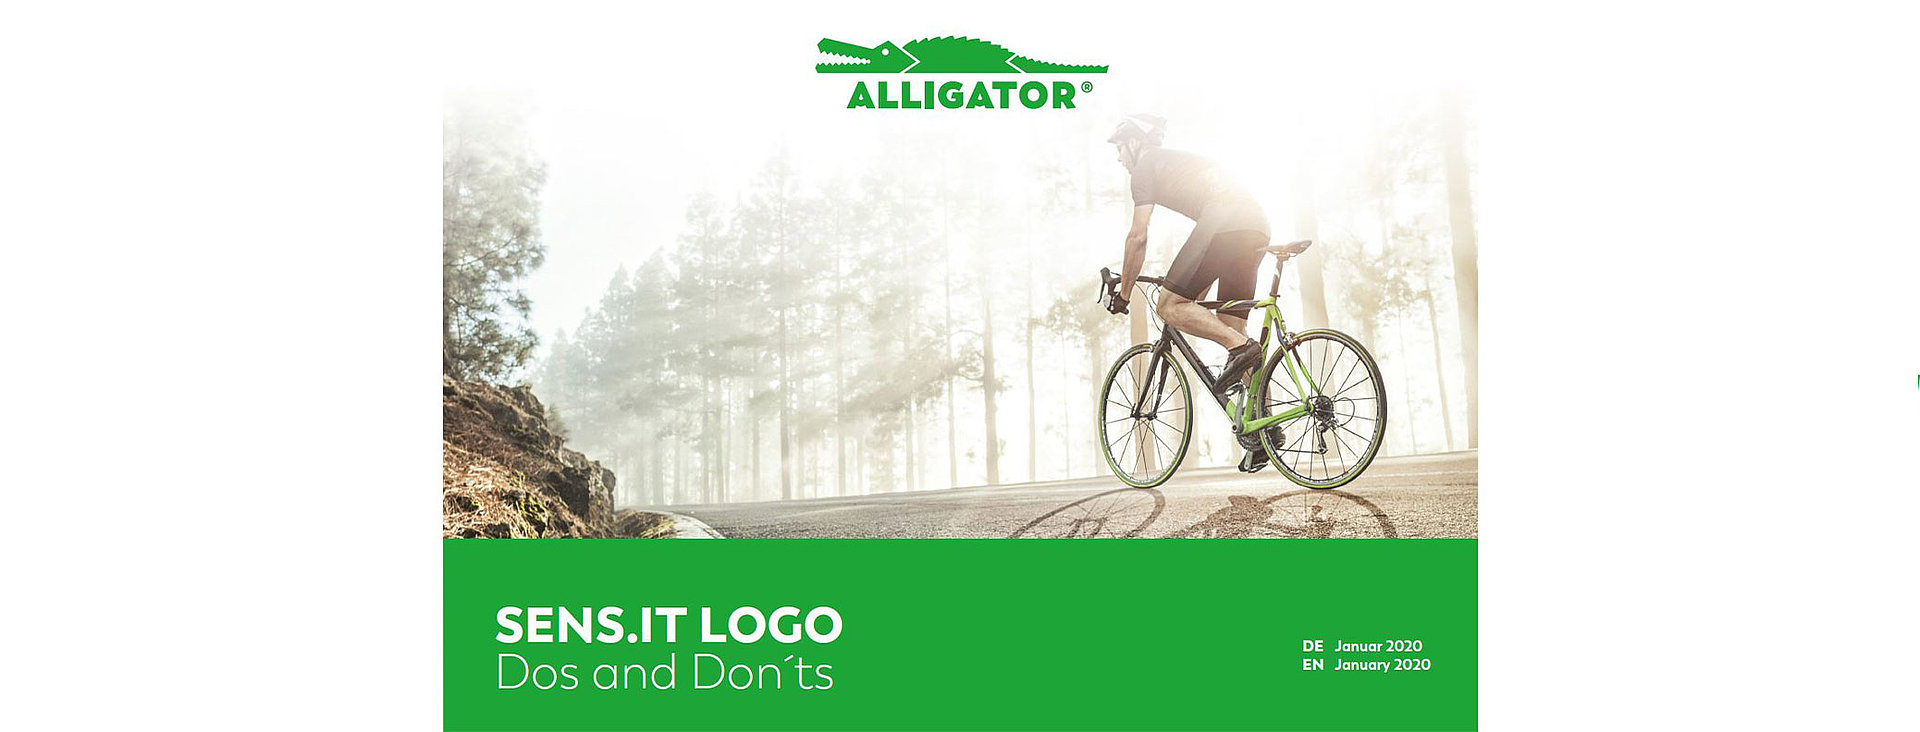 ALLIGATOR design and logo with cyclist as background